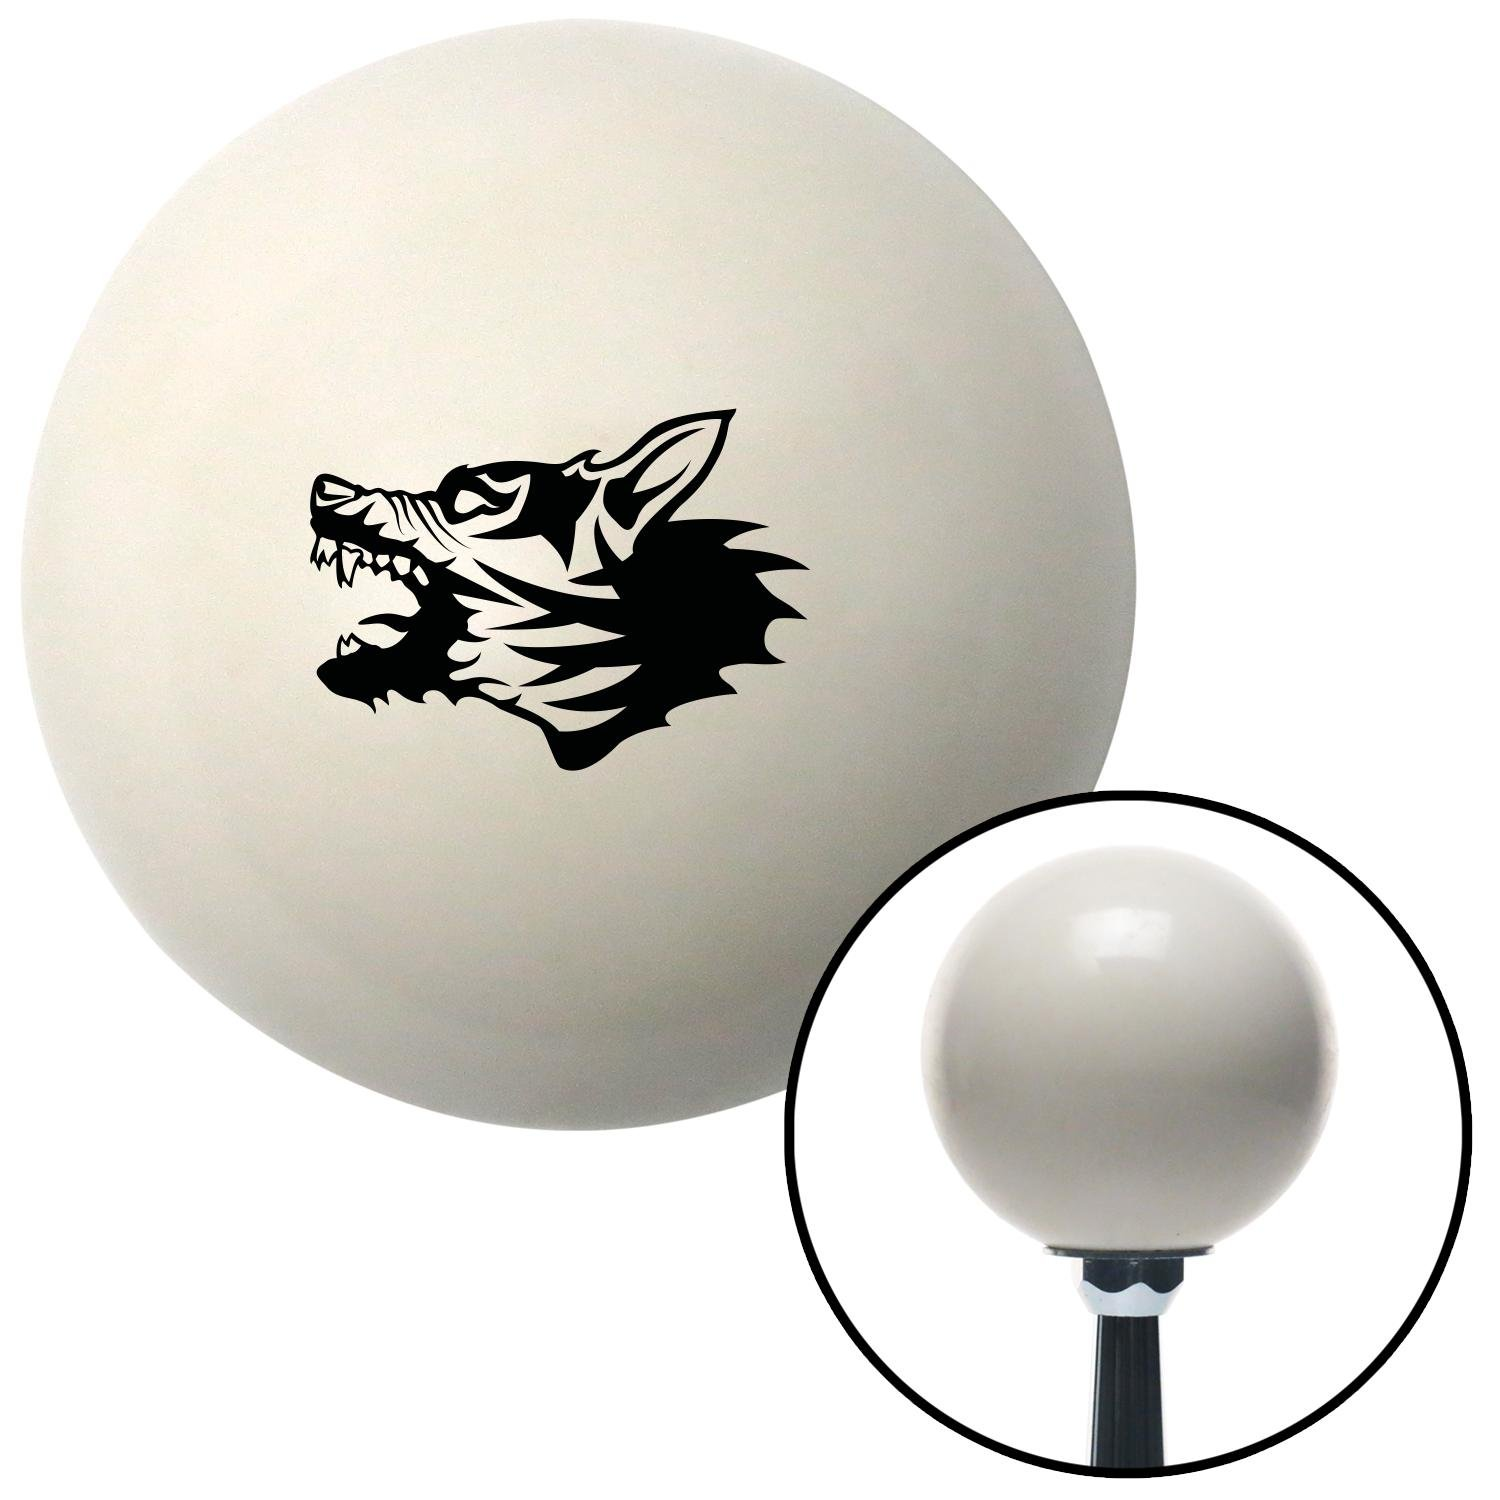 Black Angry Dog American Shifter 75968 Ivory Shift Knob with M16 x 1.5 Insert